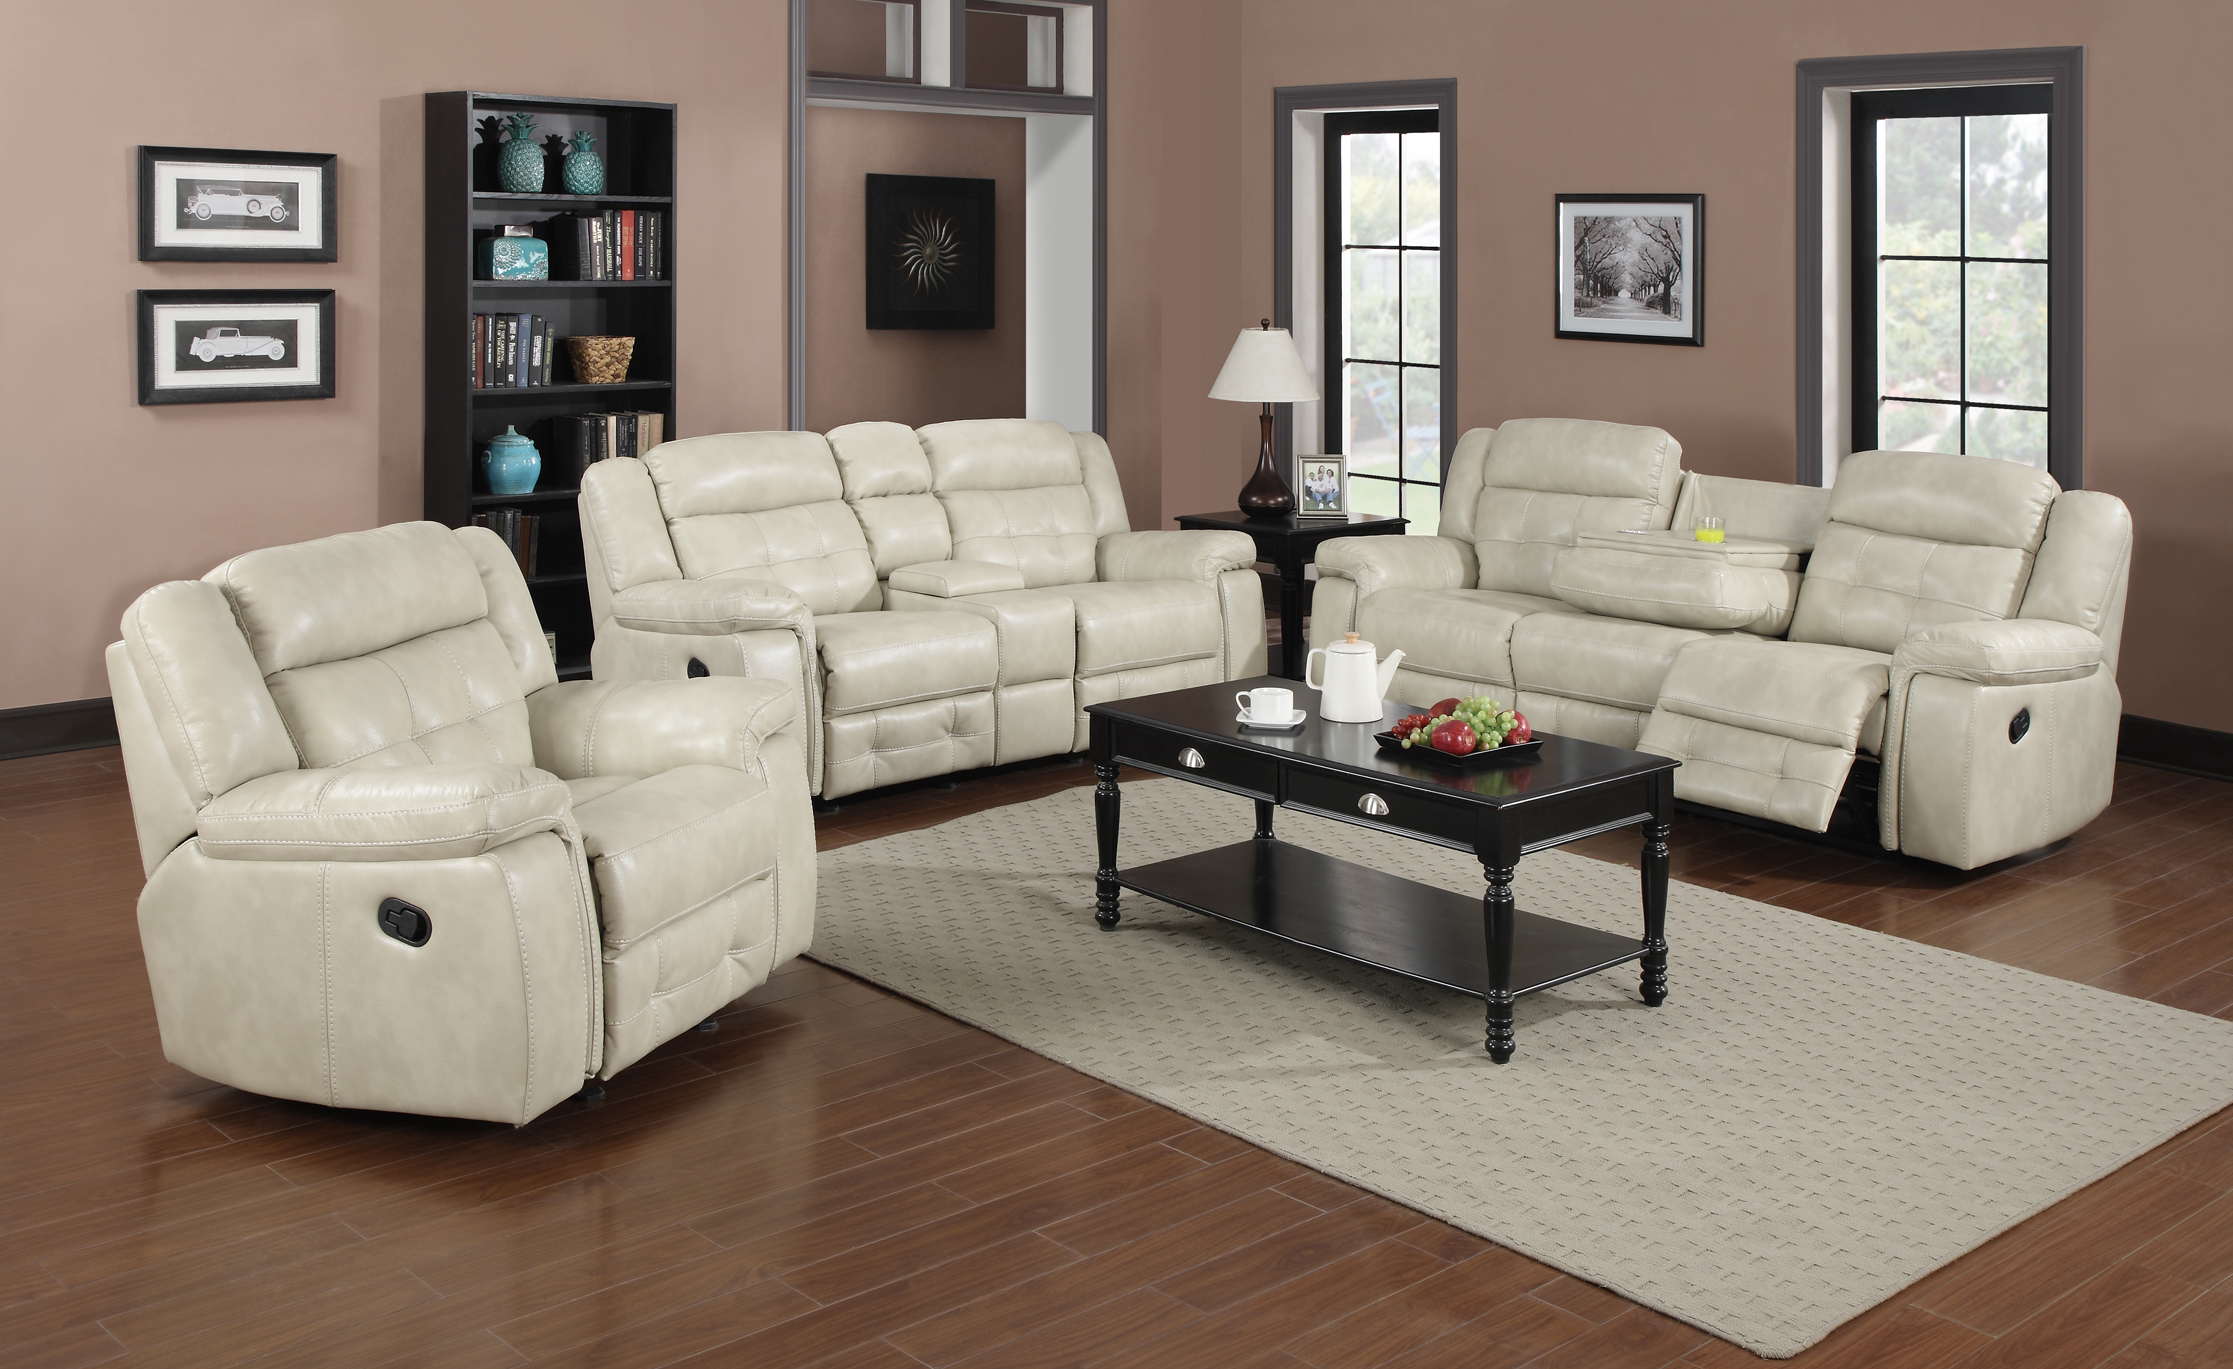 Leather sofa brampton brokeasshomecom for Sectional sofa kijiji brampton